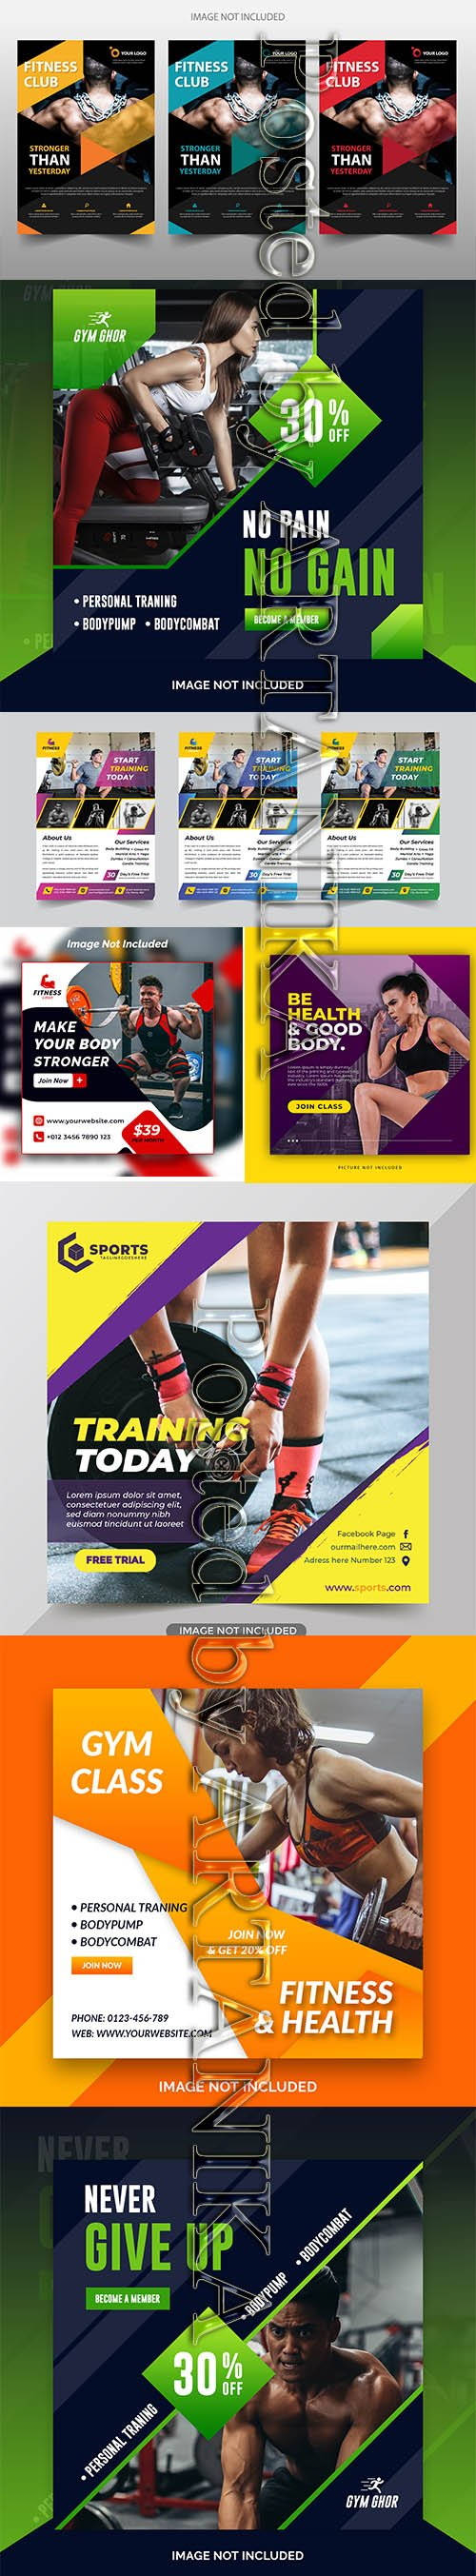 Modern Gym Flyer and Fitness Social Media Post Template Vol 2